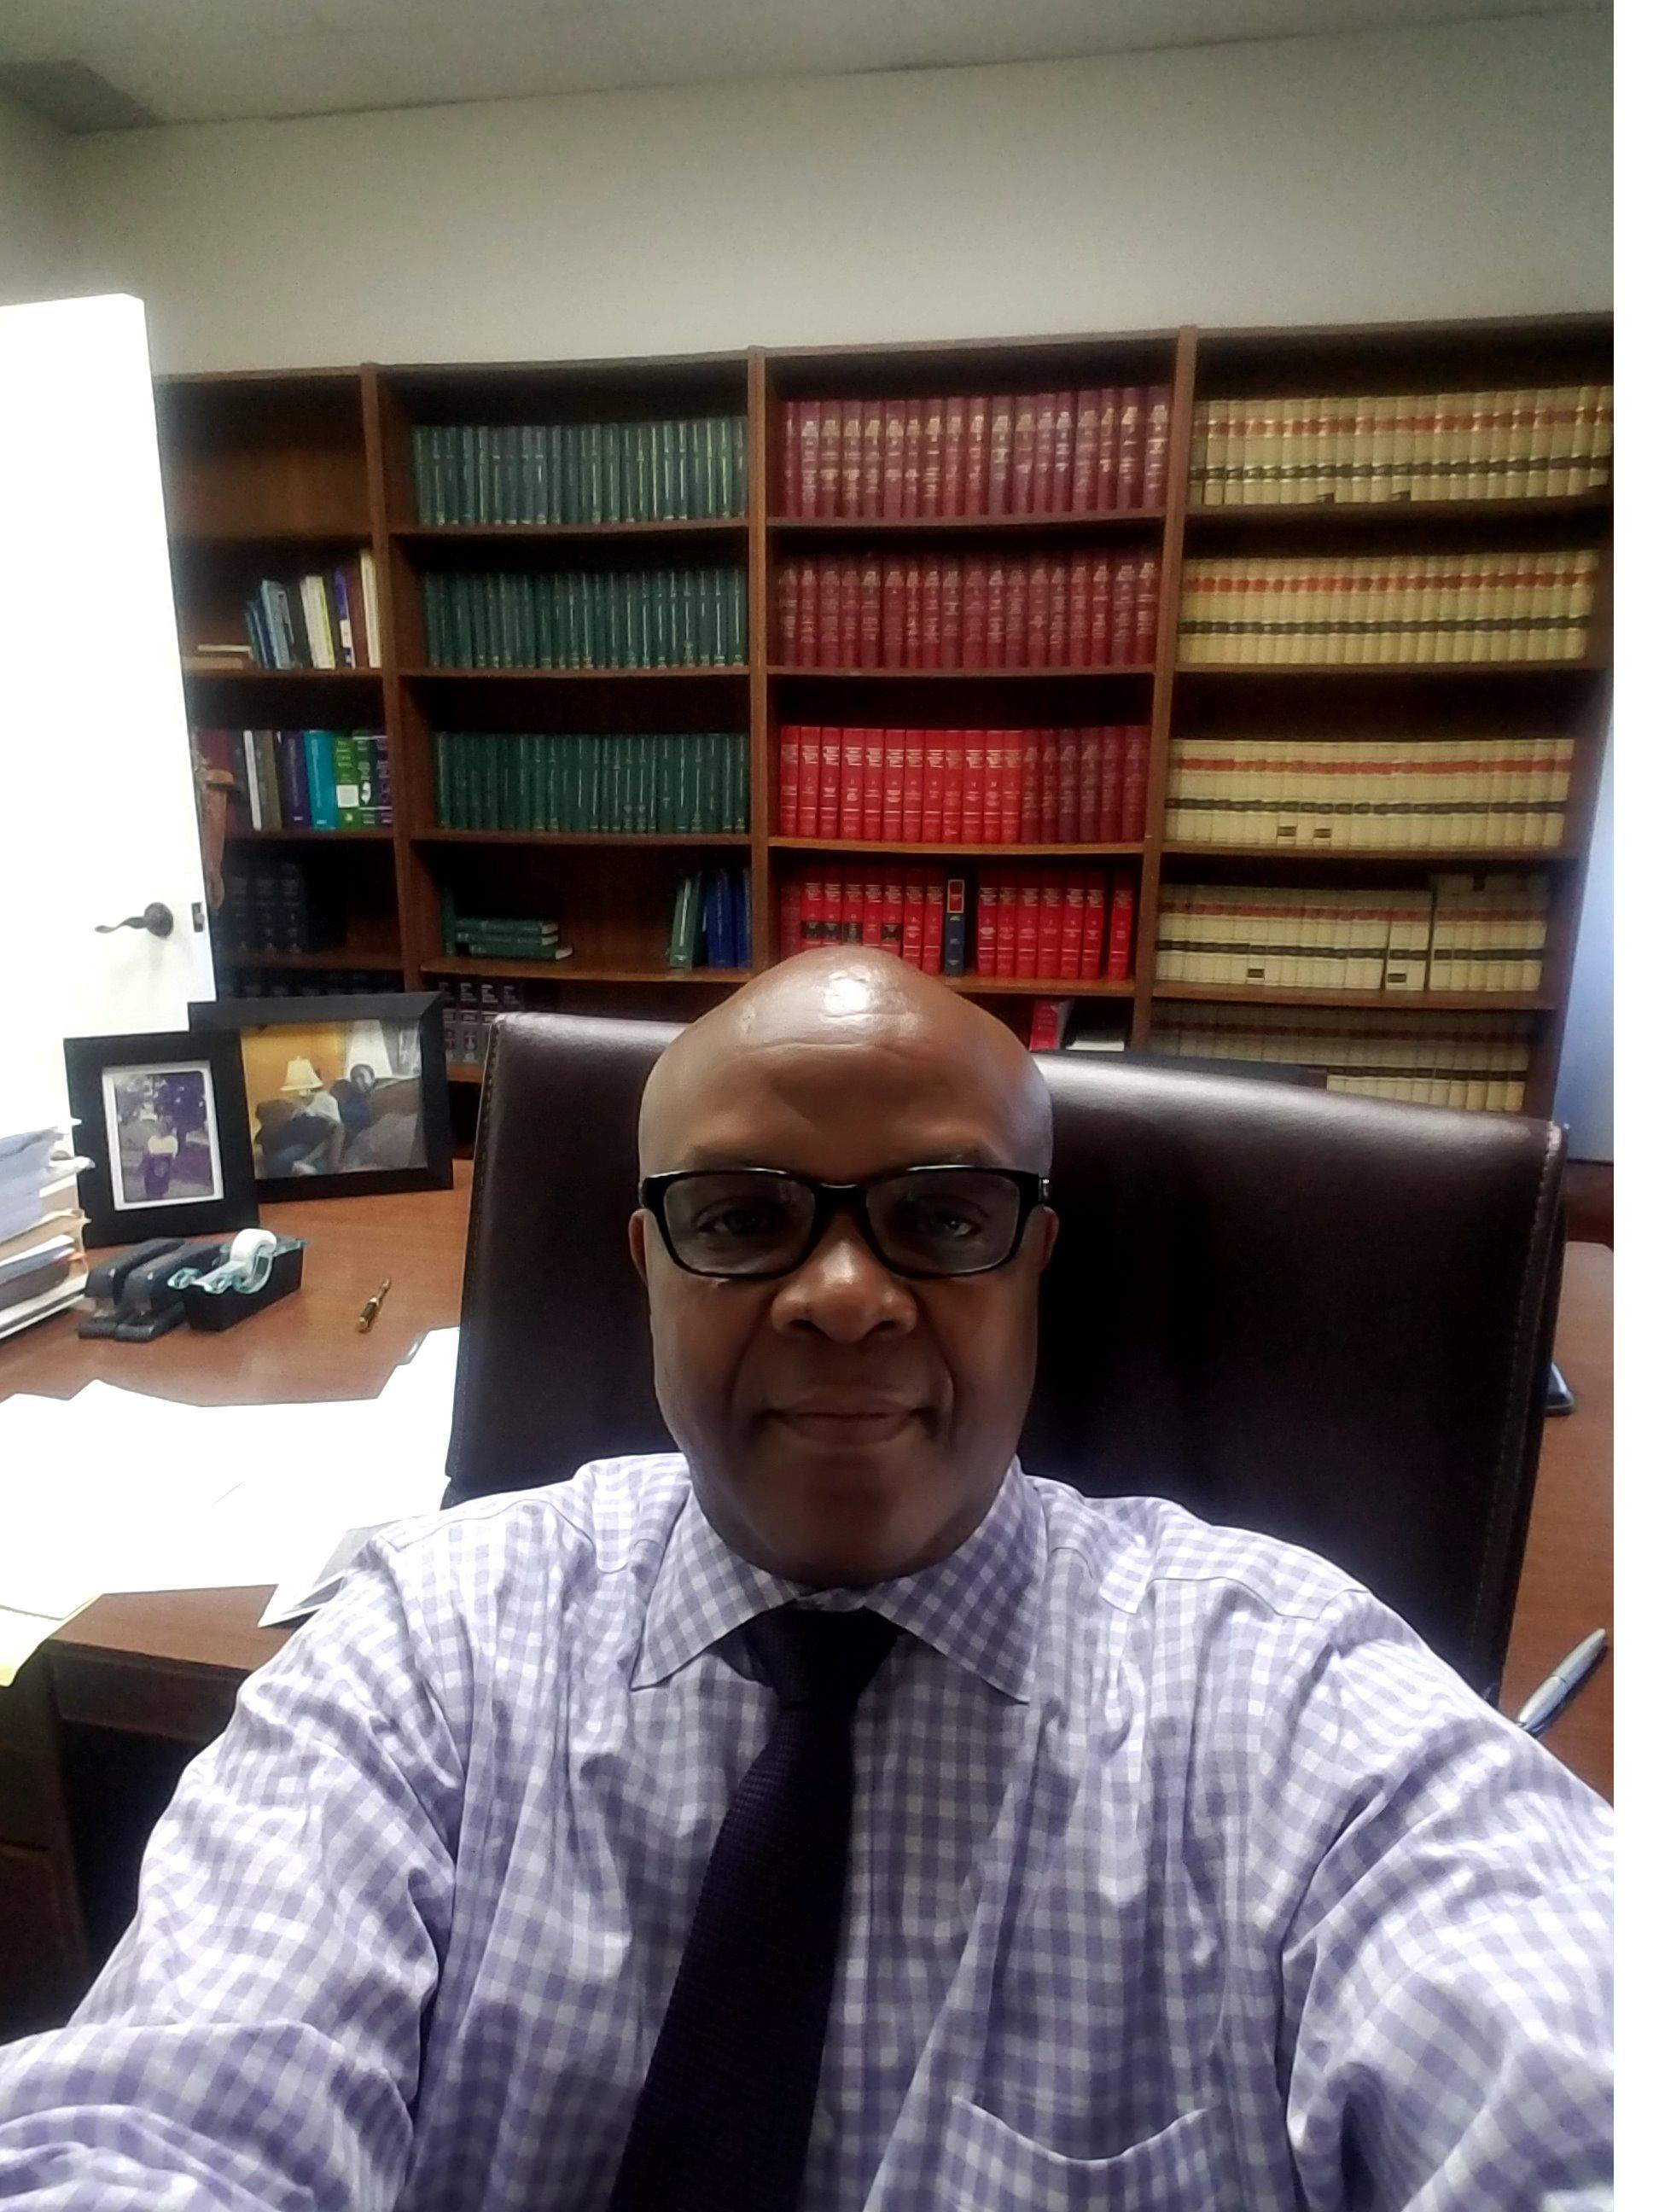 General Practice Attorney in NJ East Orange 07018 Law Office of Angus U Ejiofor, LLC. 60 Evergreen Place Suite 312 (862)233-2281